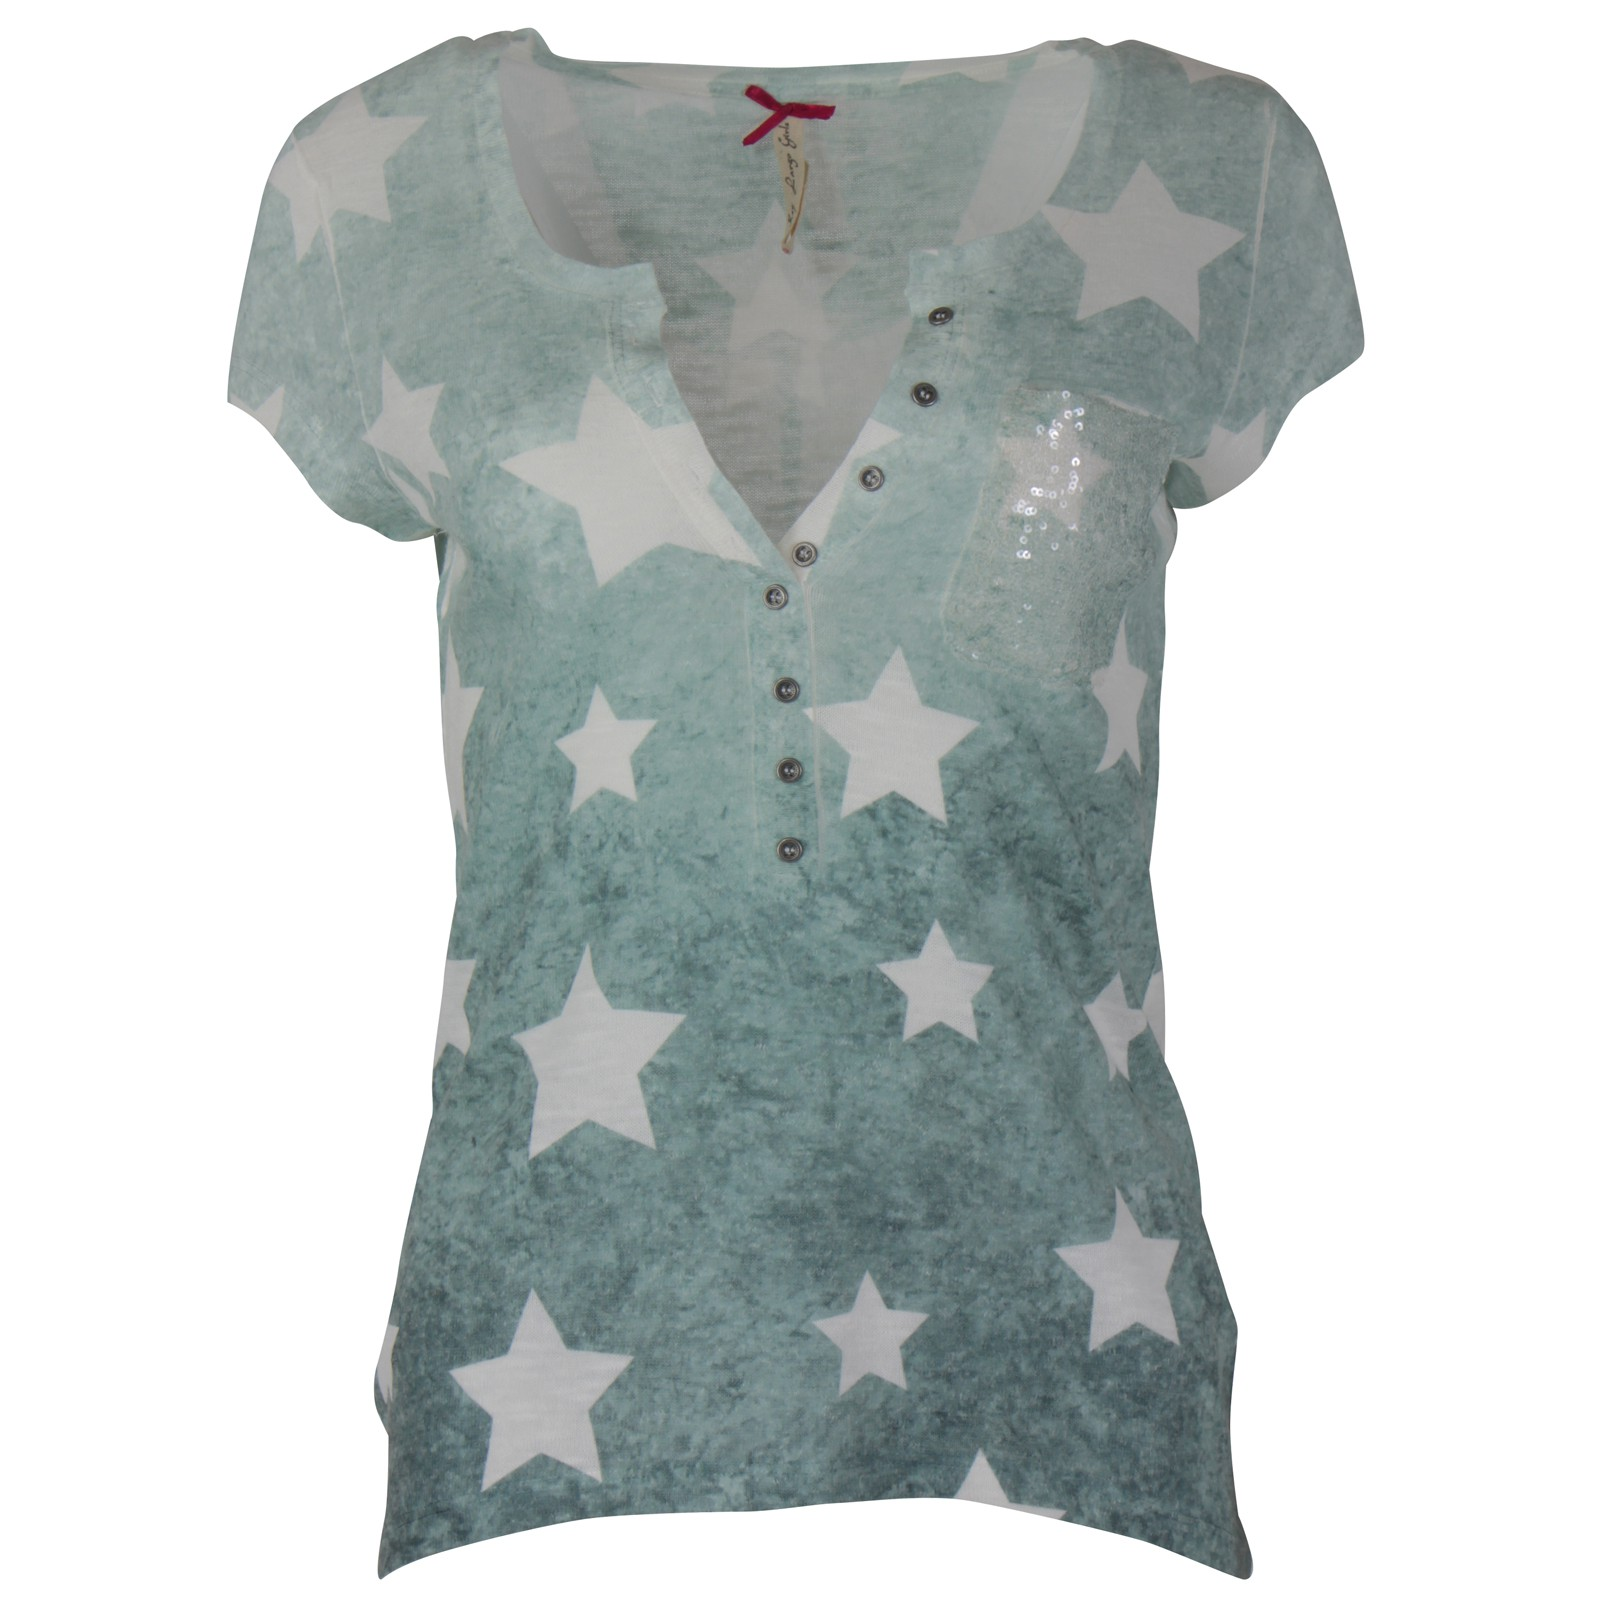 f6cf28df1e7462 KEY LARGO Damen T-Shirt Spray Dye Sternen Top Brusttasche Pailletten ...